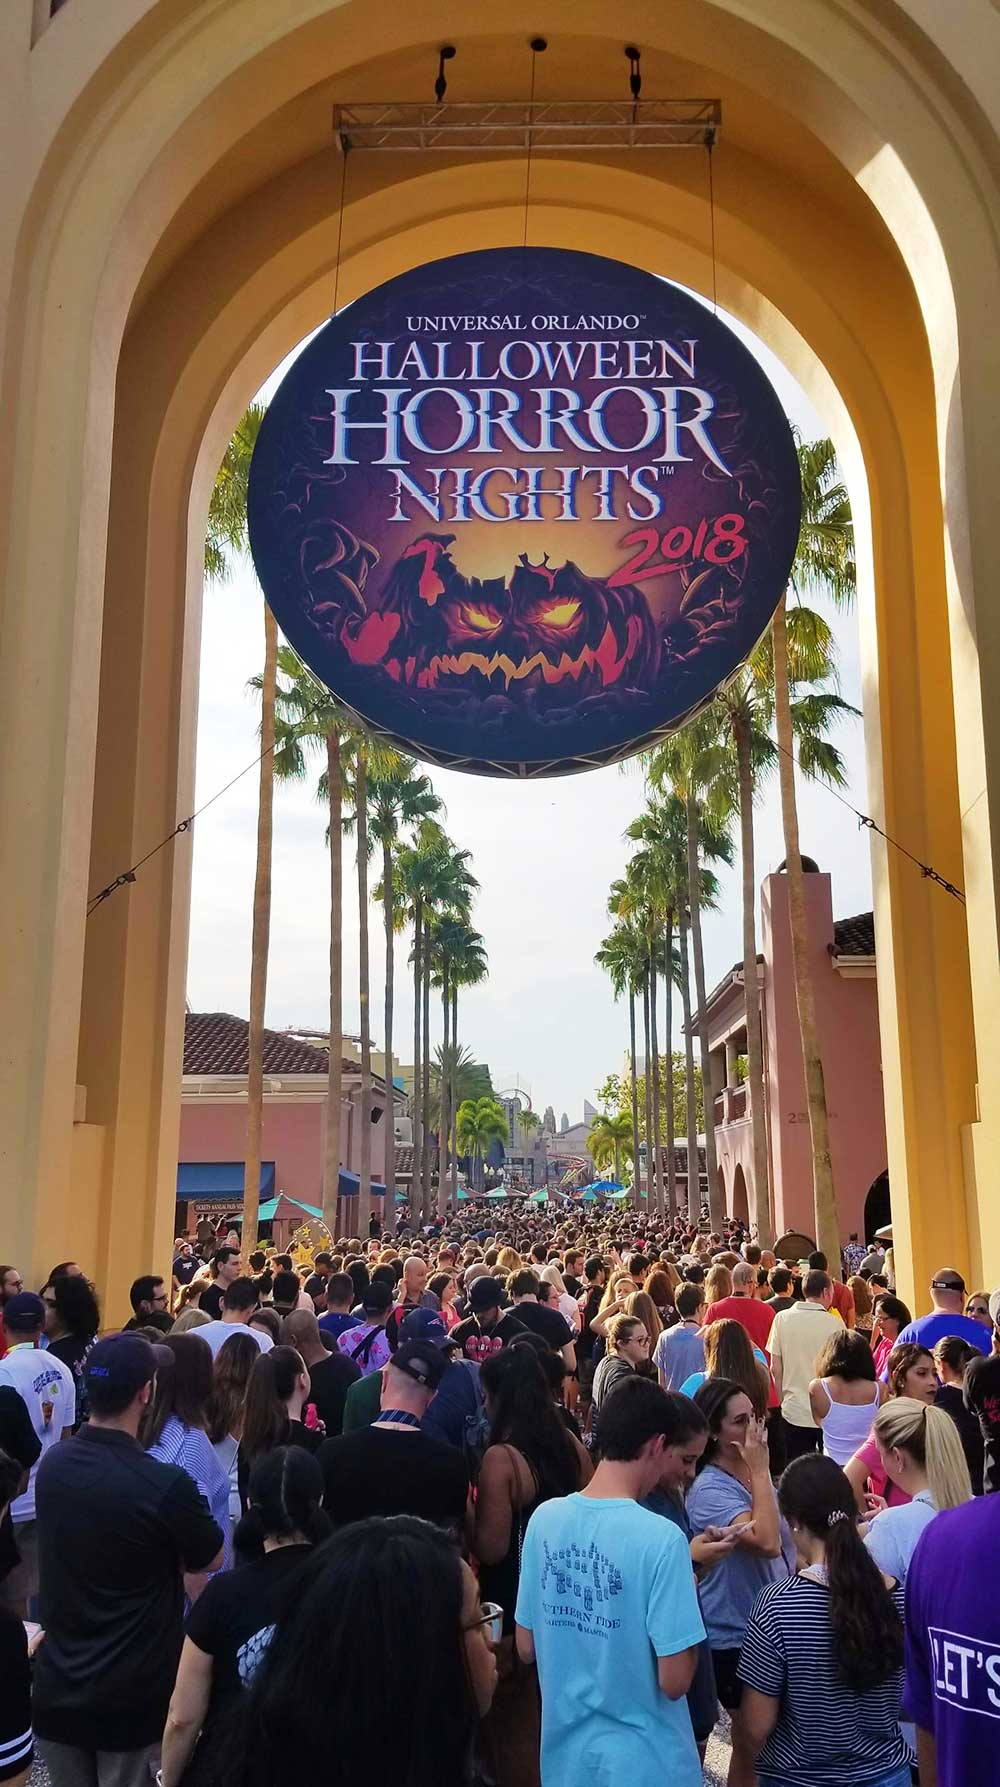 Halloween Horror Nights 28 - Crowds